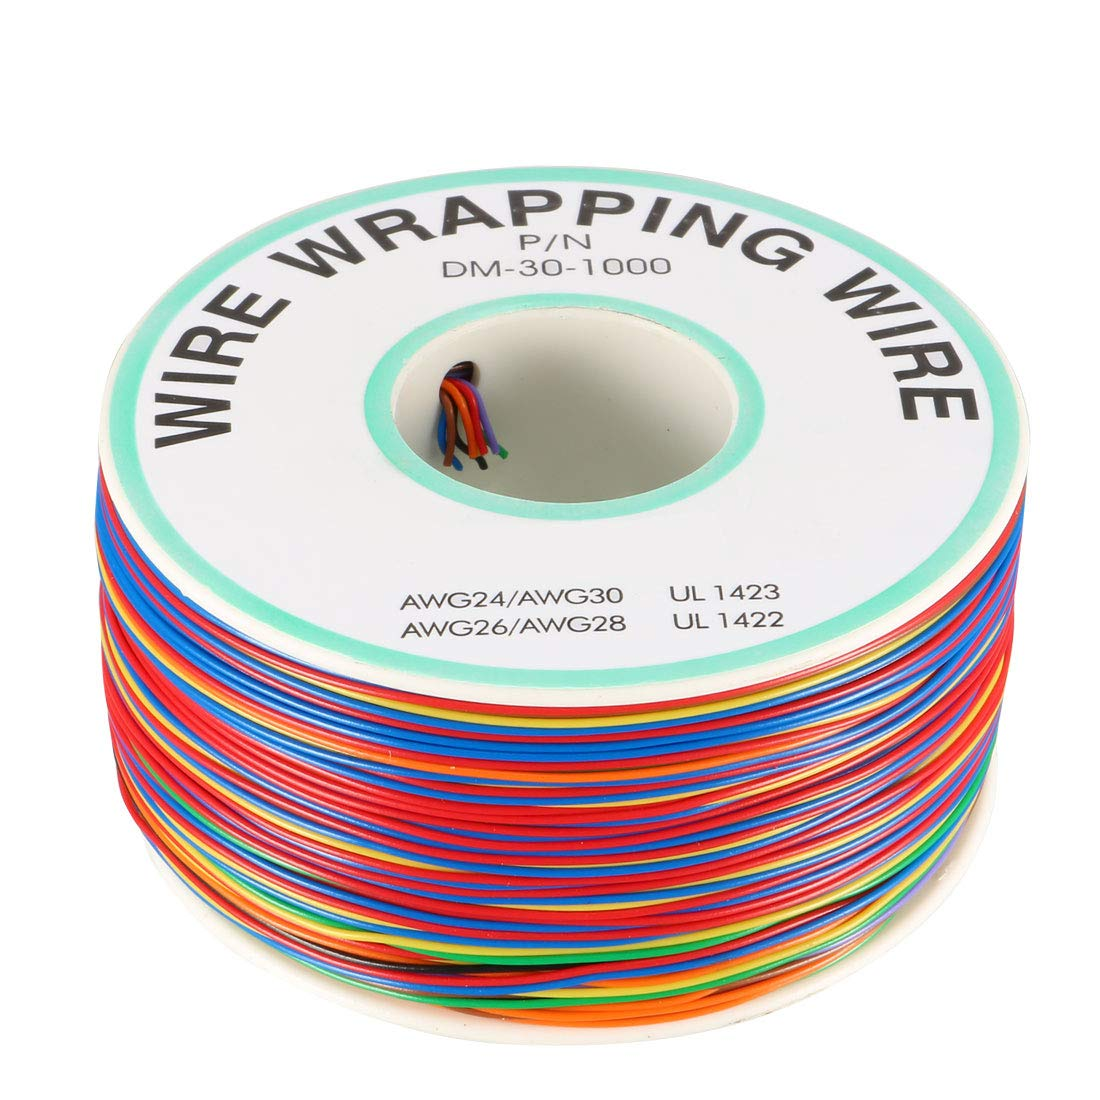 uxcell AWG30 656.2FT Breadboard Wrapping Wire PCB Solder PVC Coated Tin Plated Copper Cable, 1 Roll 8-Wire Multiple Colors a18062200ux0094